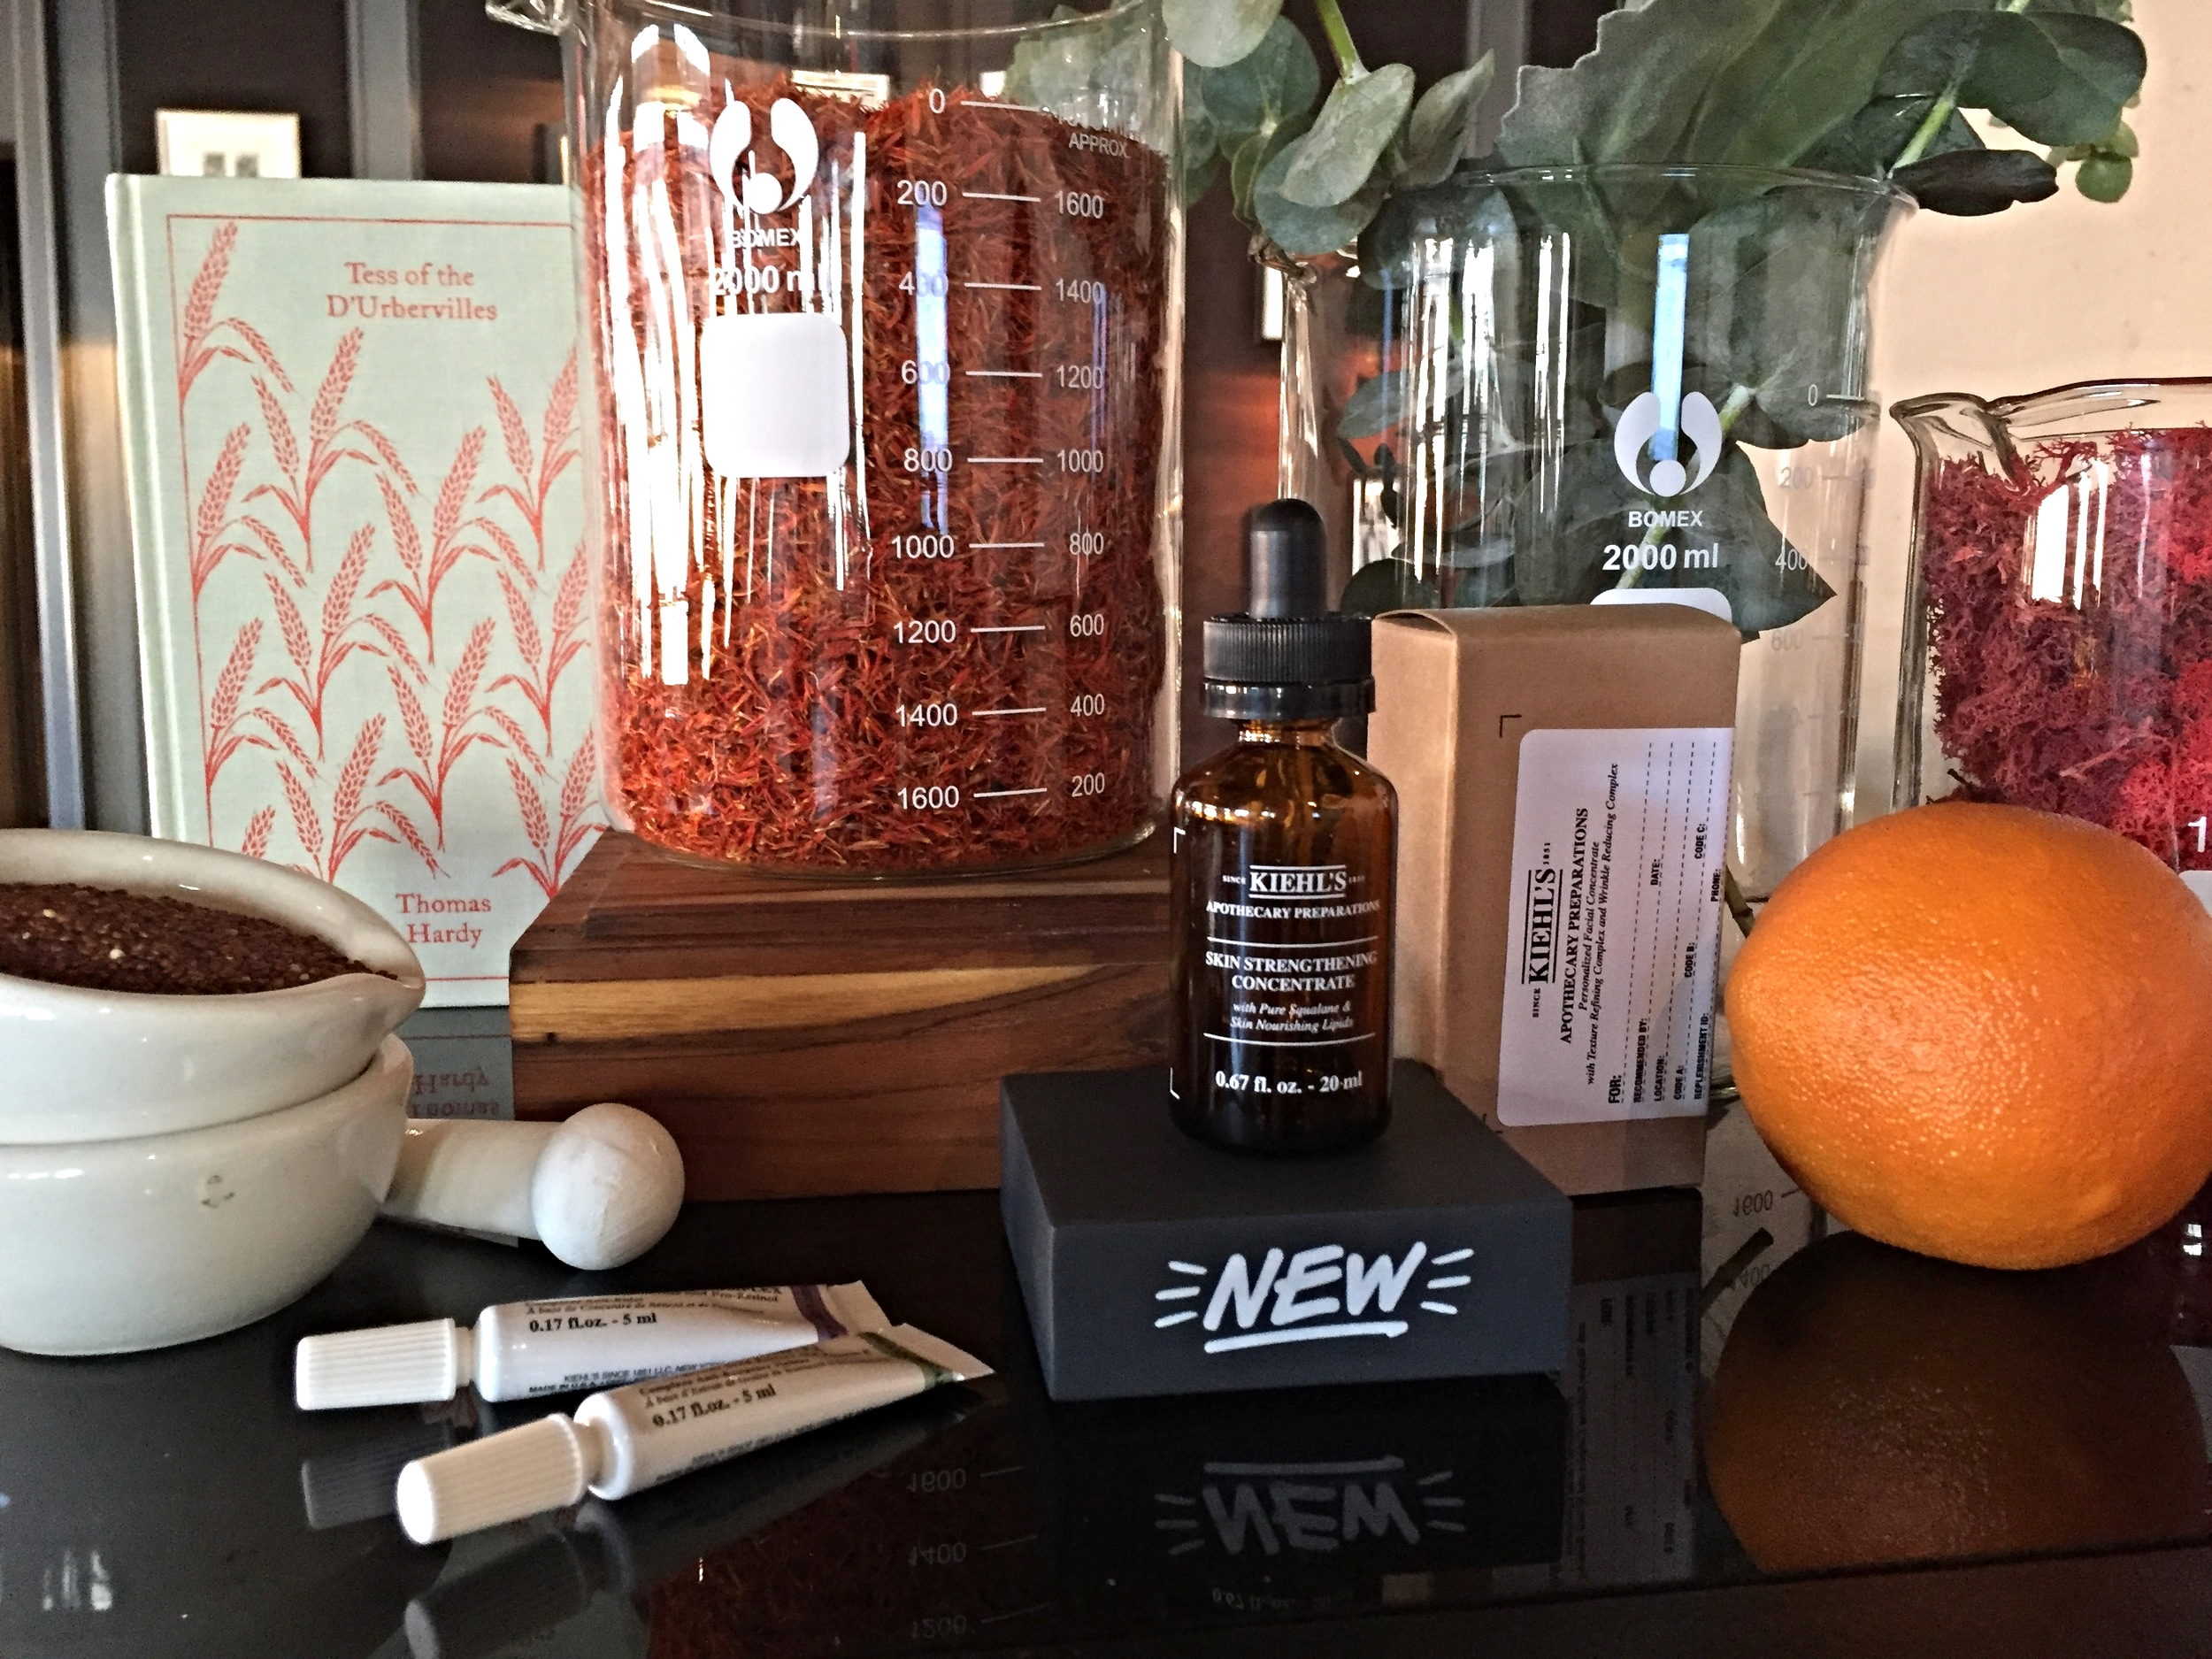 Kiehl's Apothecary Preparations, on display at the Toronto press launch